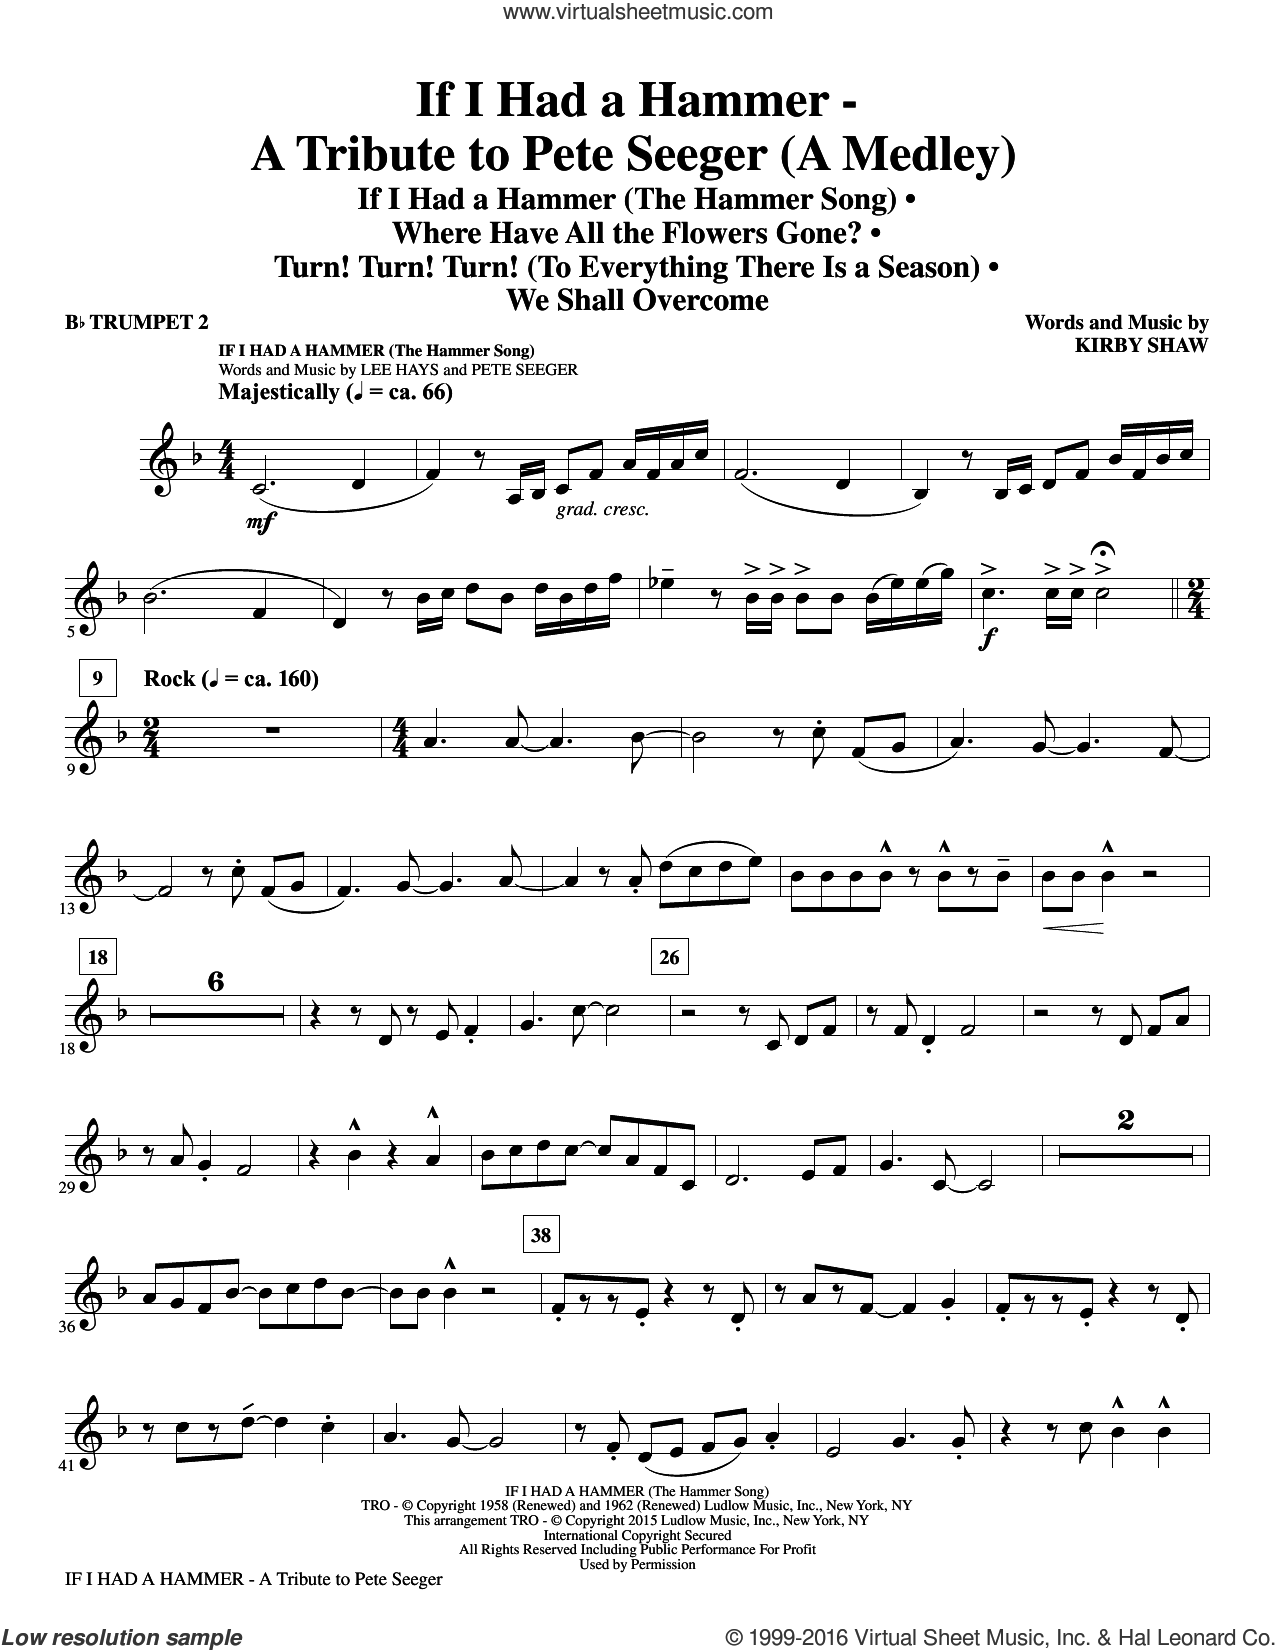 If I Had A Hammer, a tribute to pete seeger sheet music for orchestra/band (Bb trumpet 2) by Pete Seeger, Kirby Shaw, Peter, Paul & Mary, Trini Lopez and Lee Hays, intermediate skill level